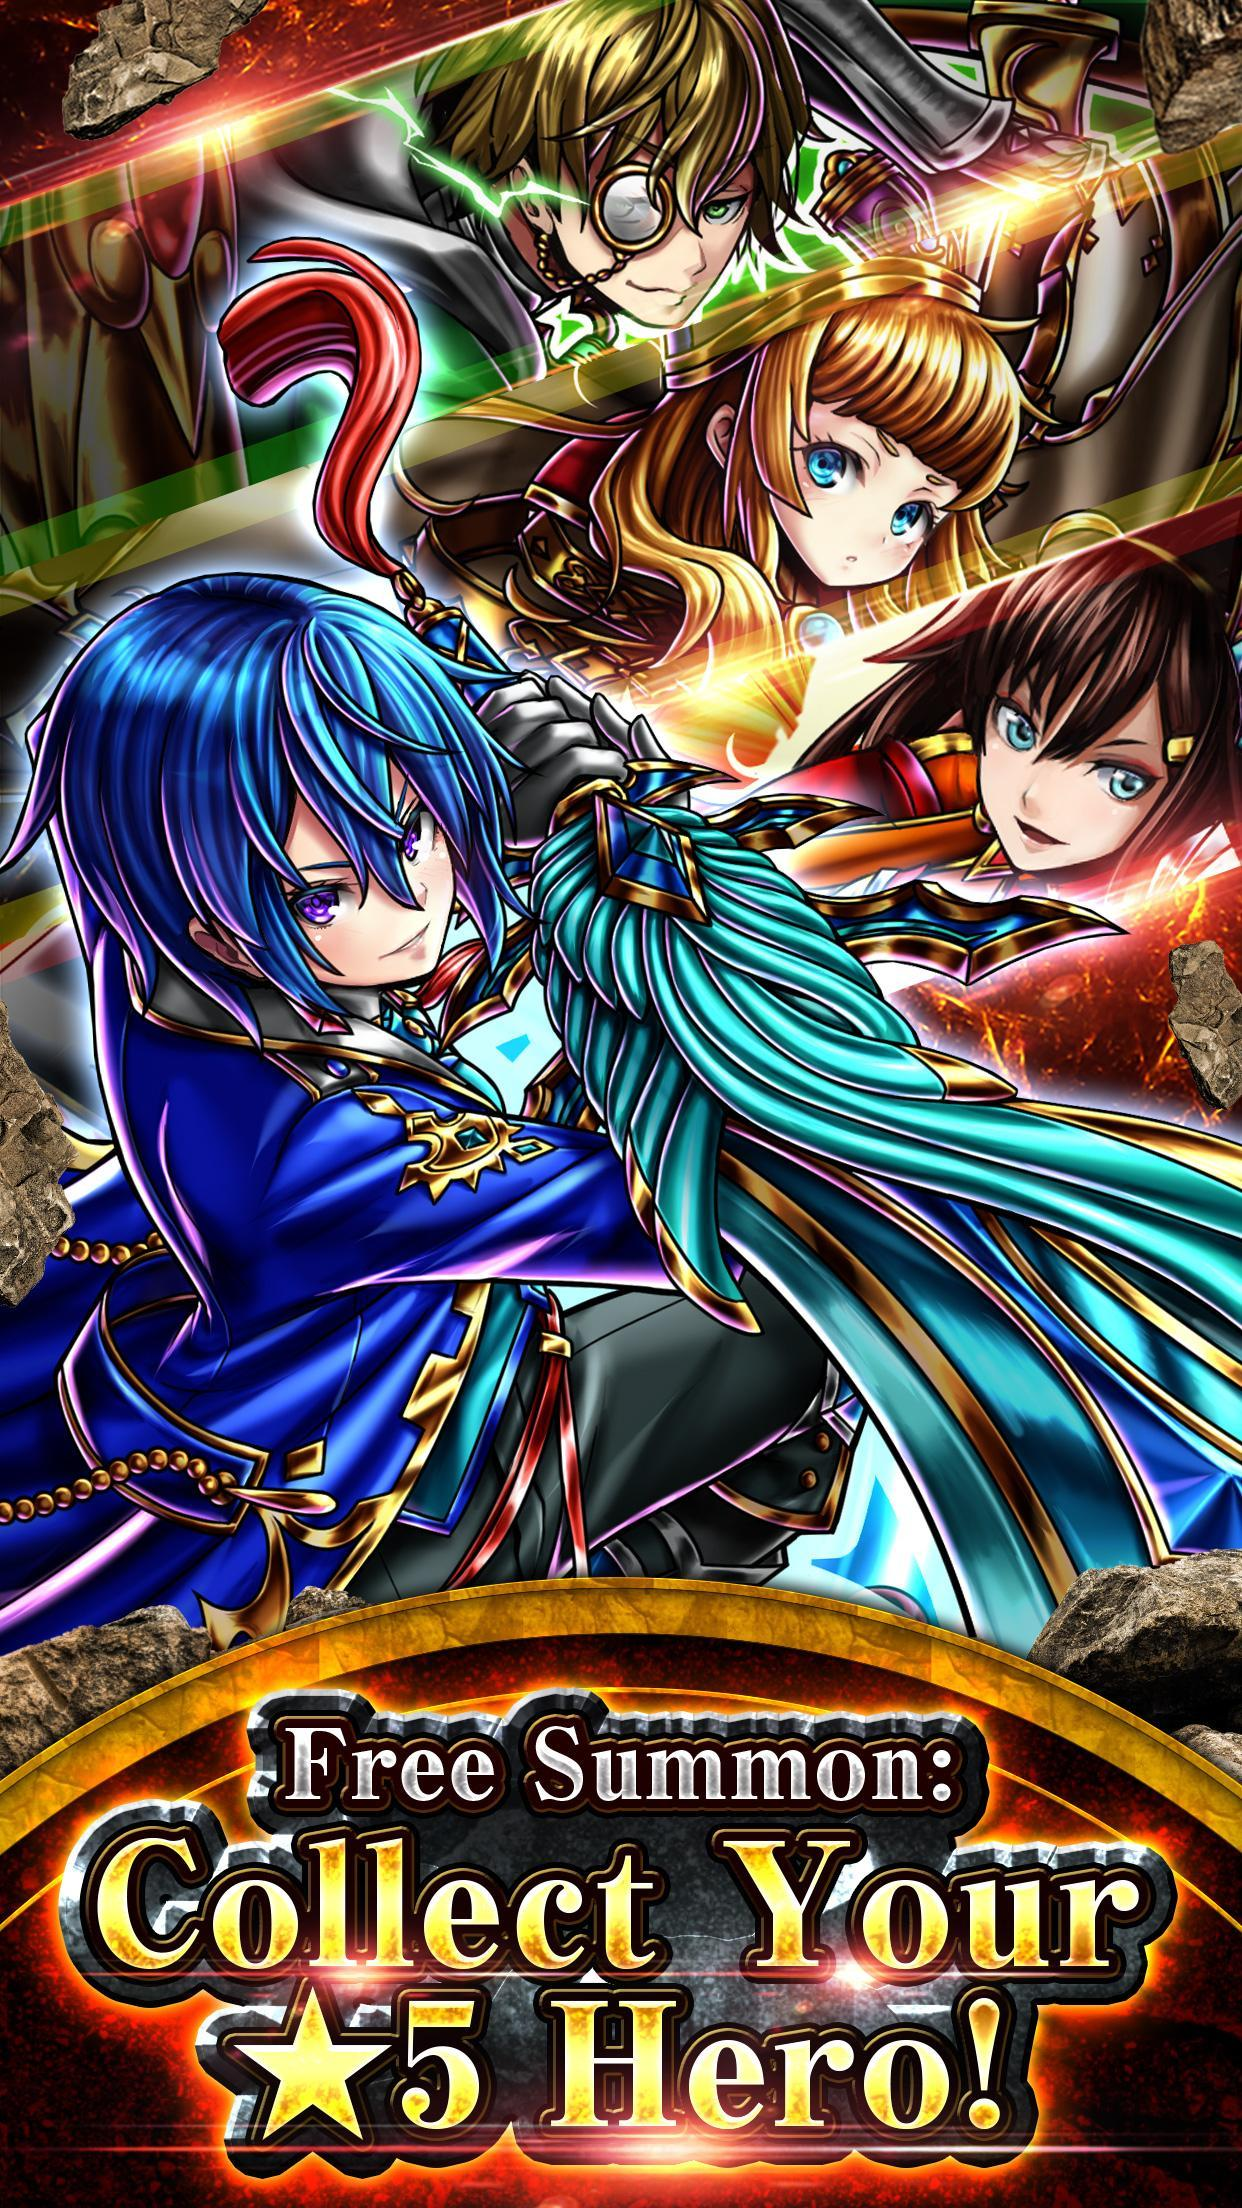 Grand Summoners for Android - APK Download